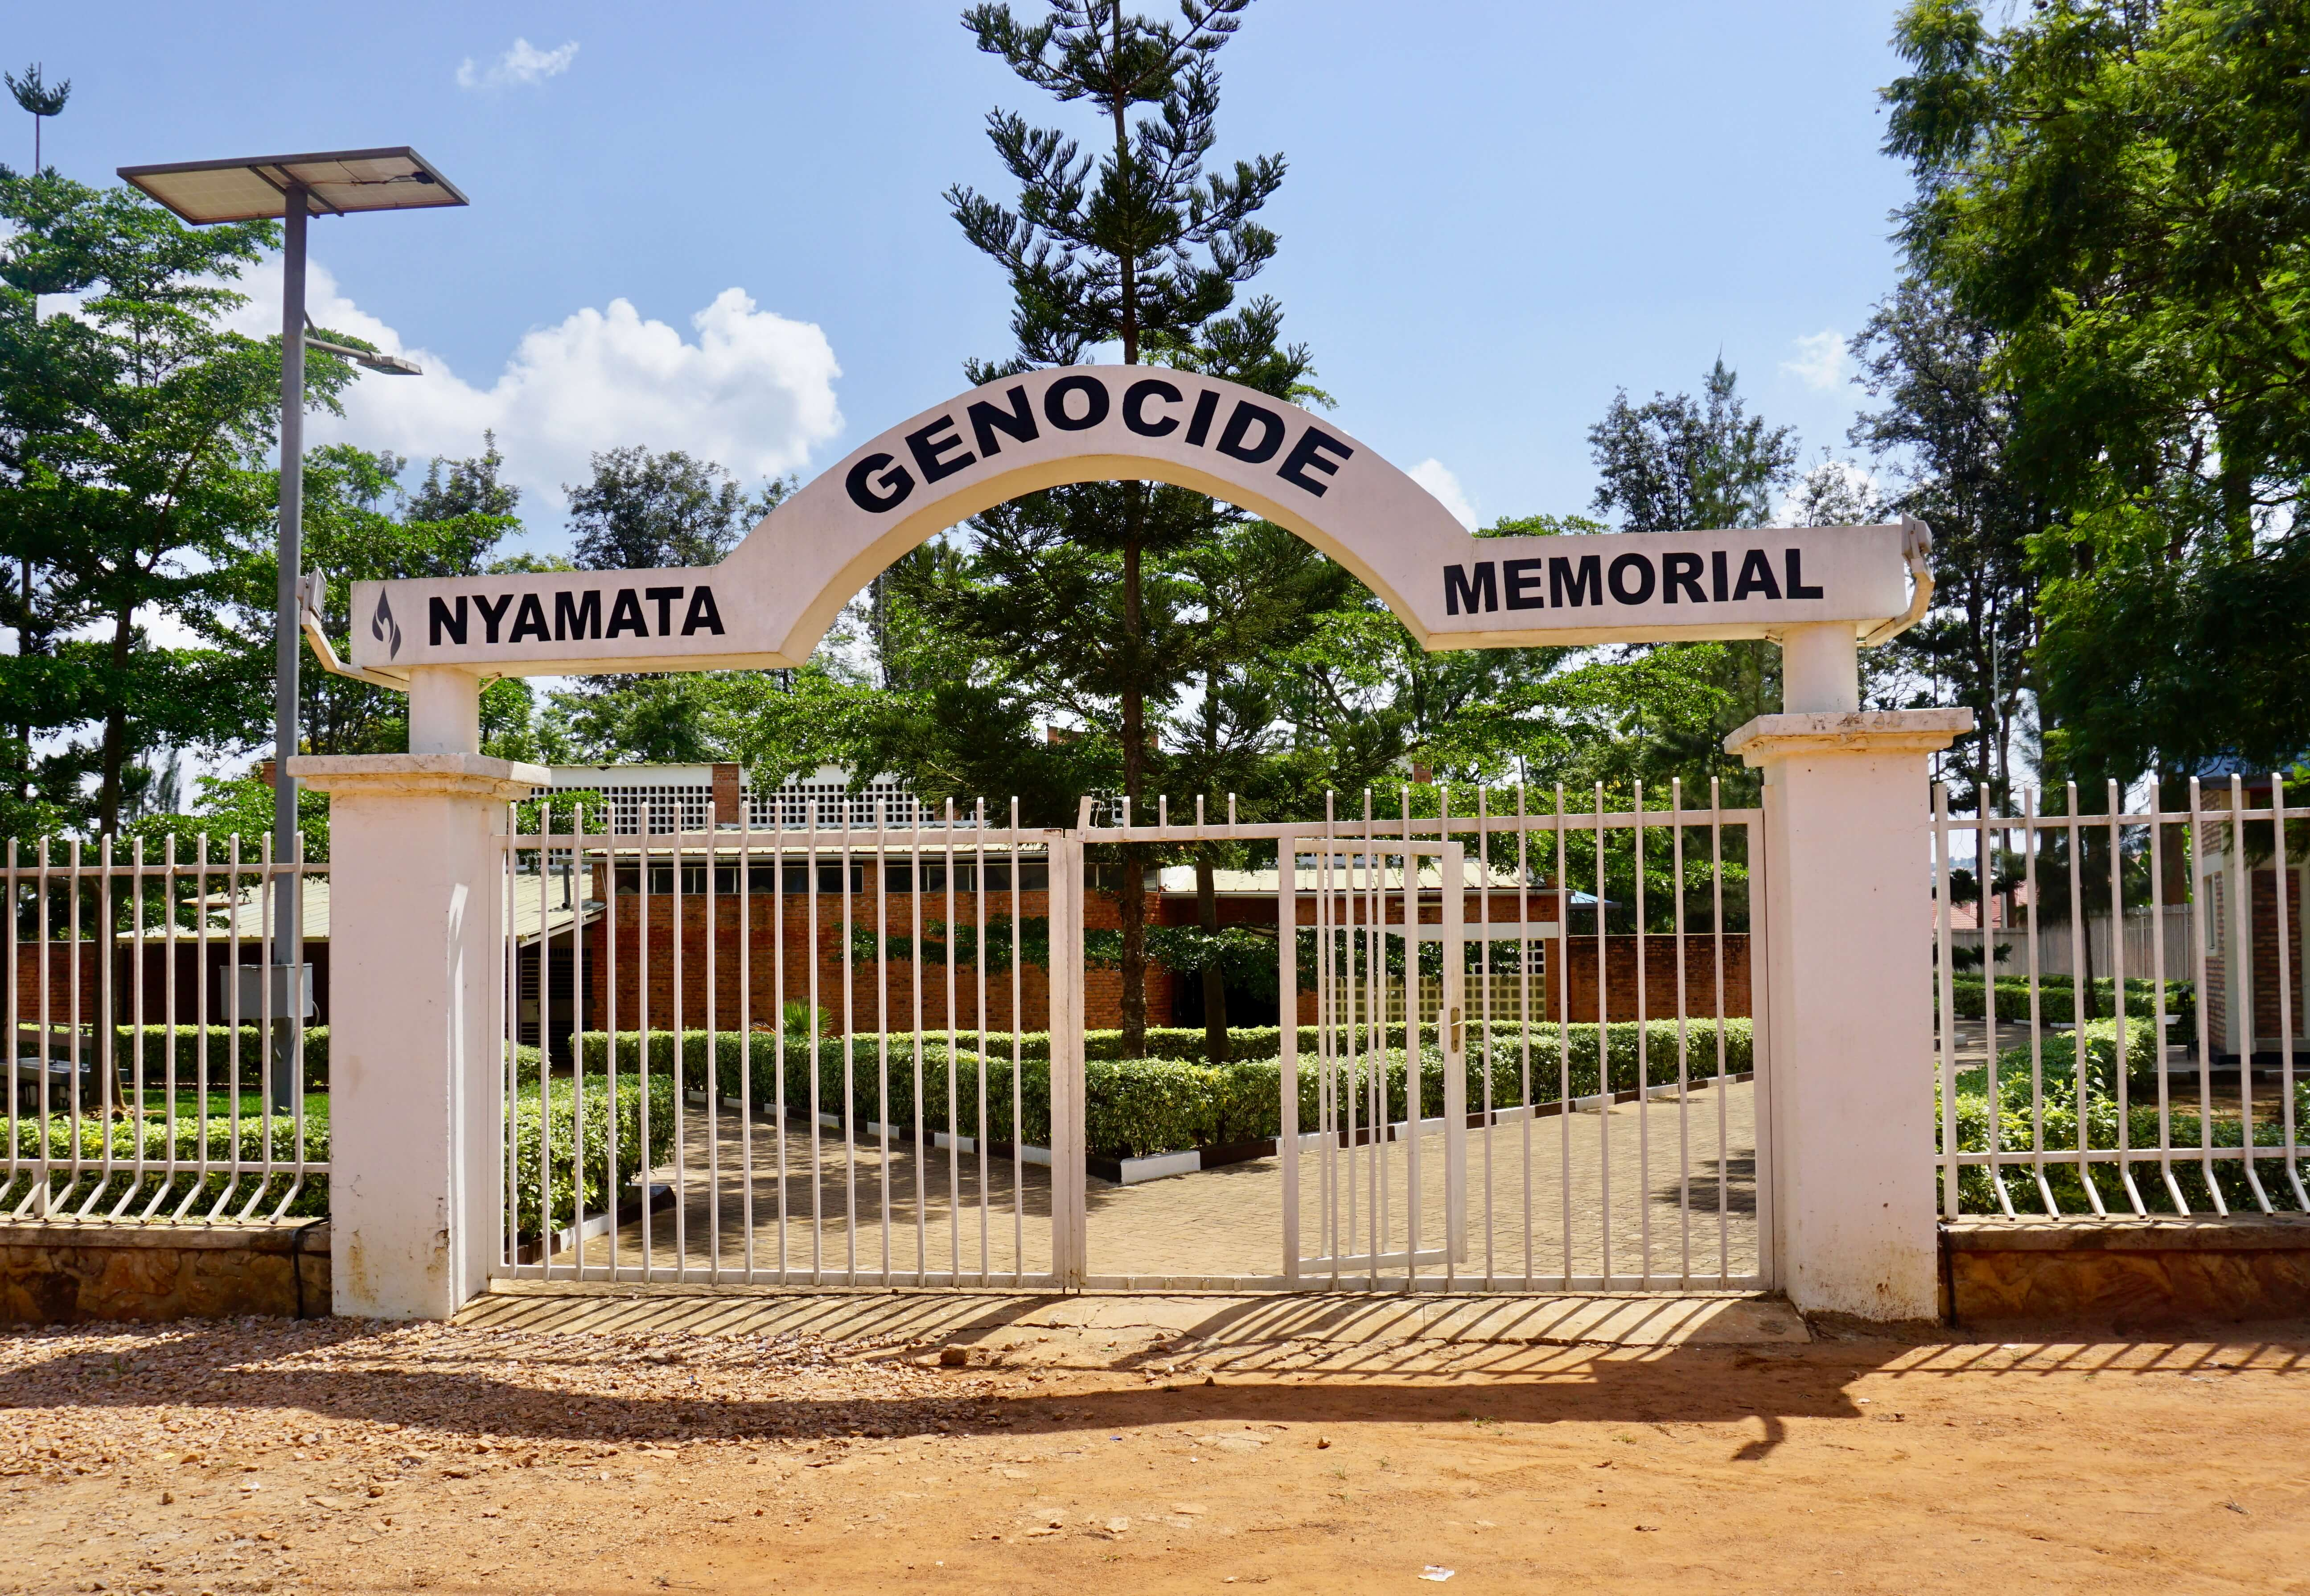 Entrance to the Nyamata Genocide Memorial